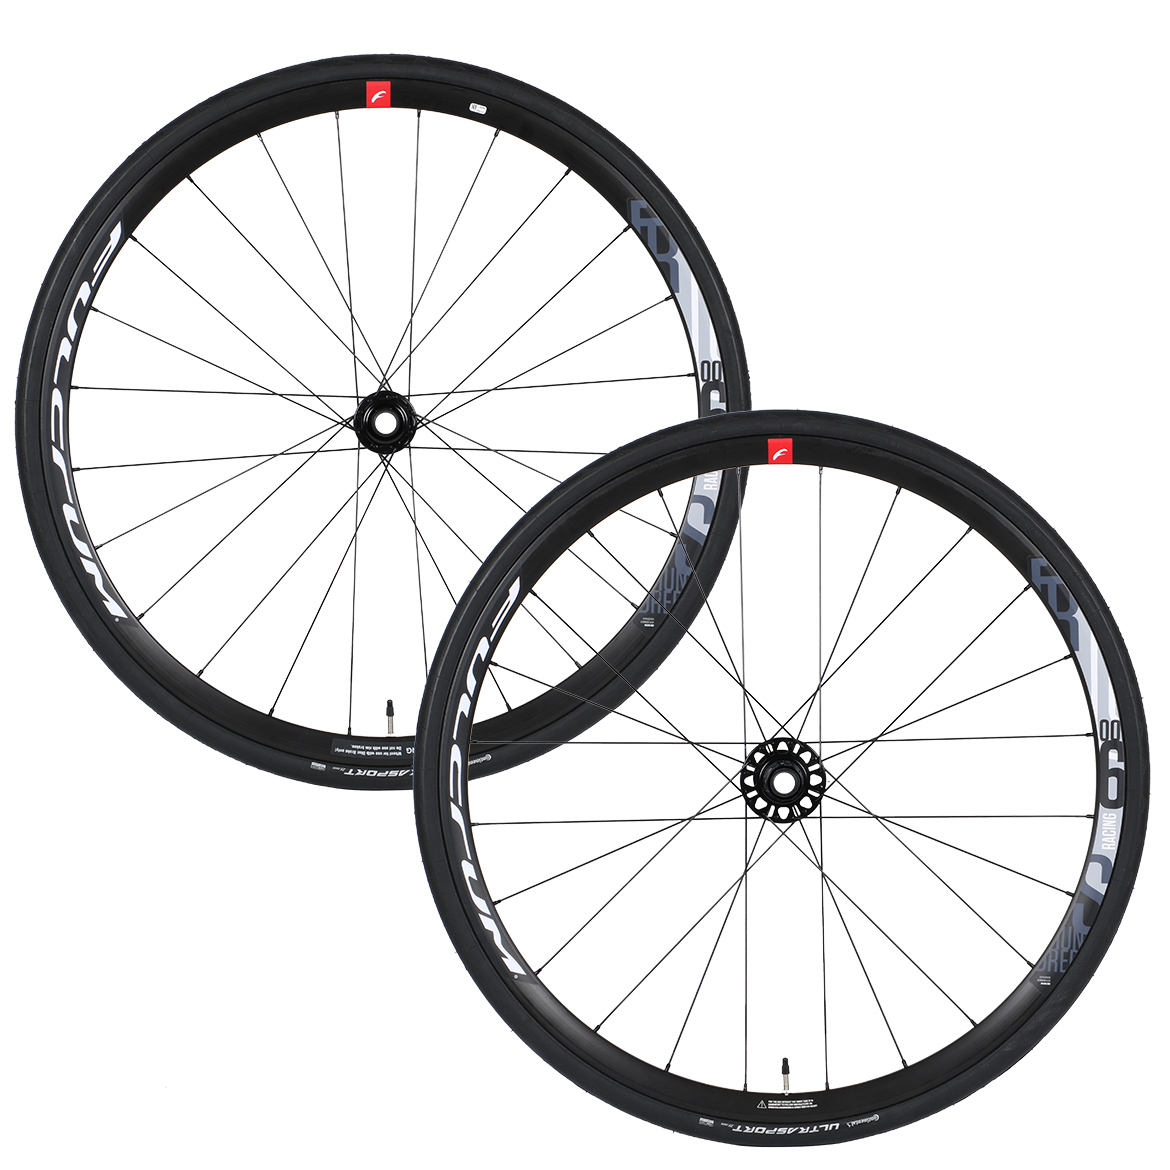 Fulcrum Racing 600 Disc Wheelset With Continental Ultra Sport Tyres